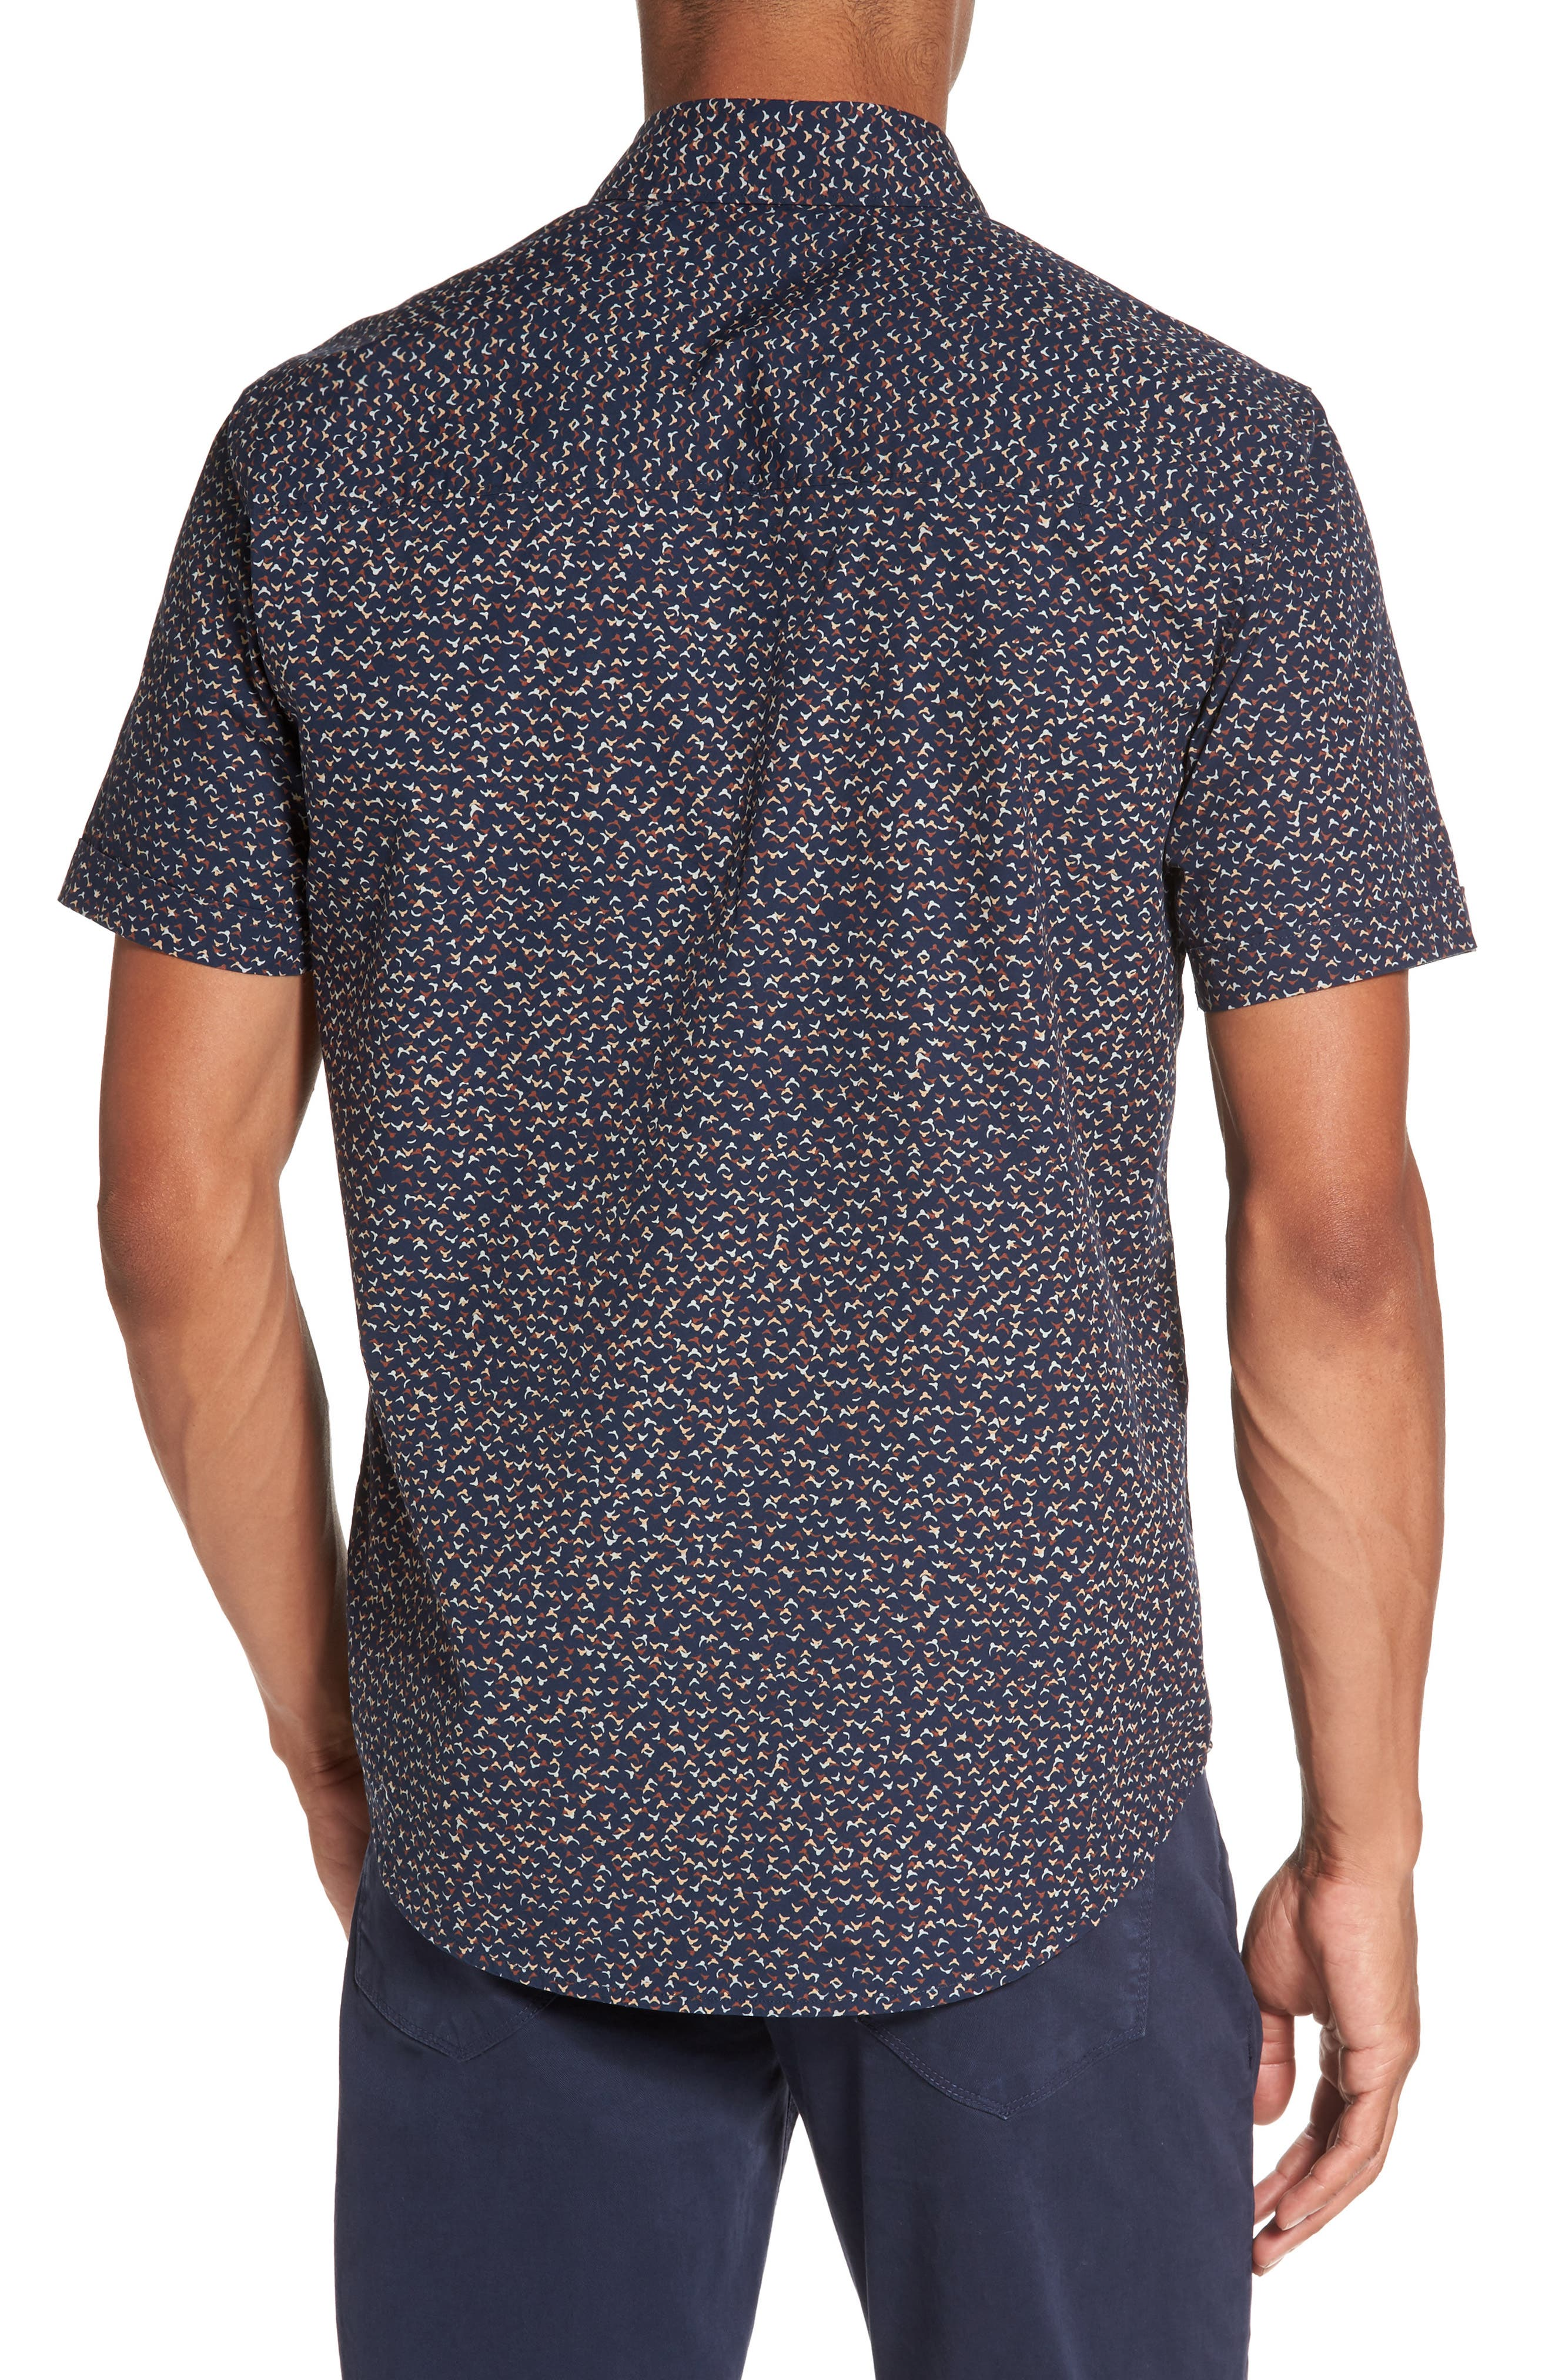 Becker Patterned Woven Shirt,                             Alternate thumbnail 2, color,                             400